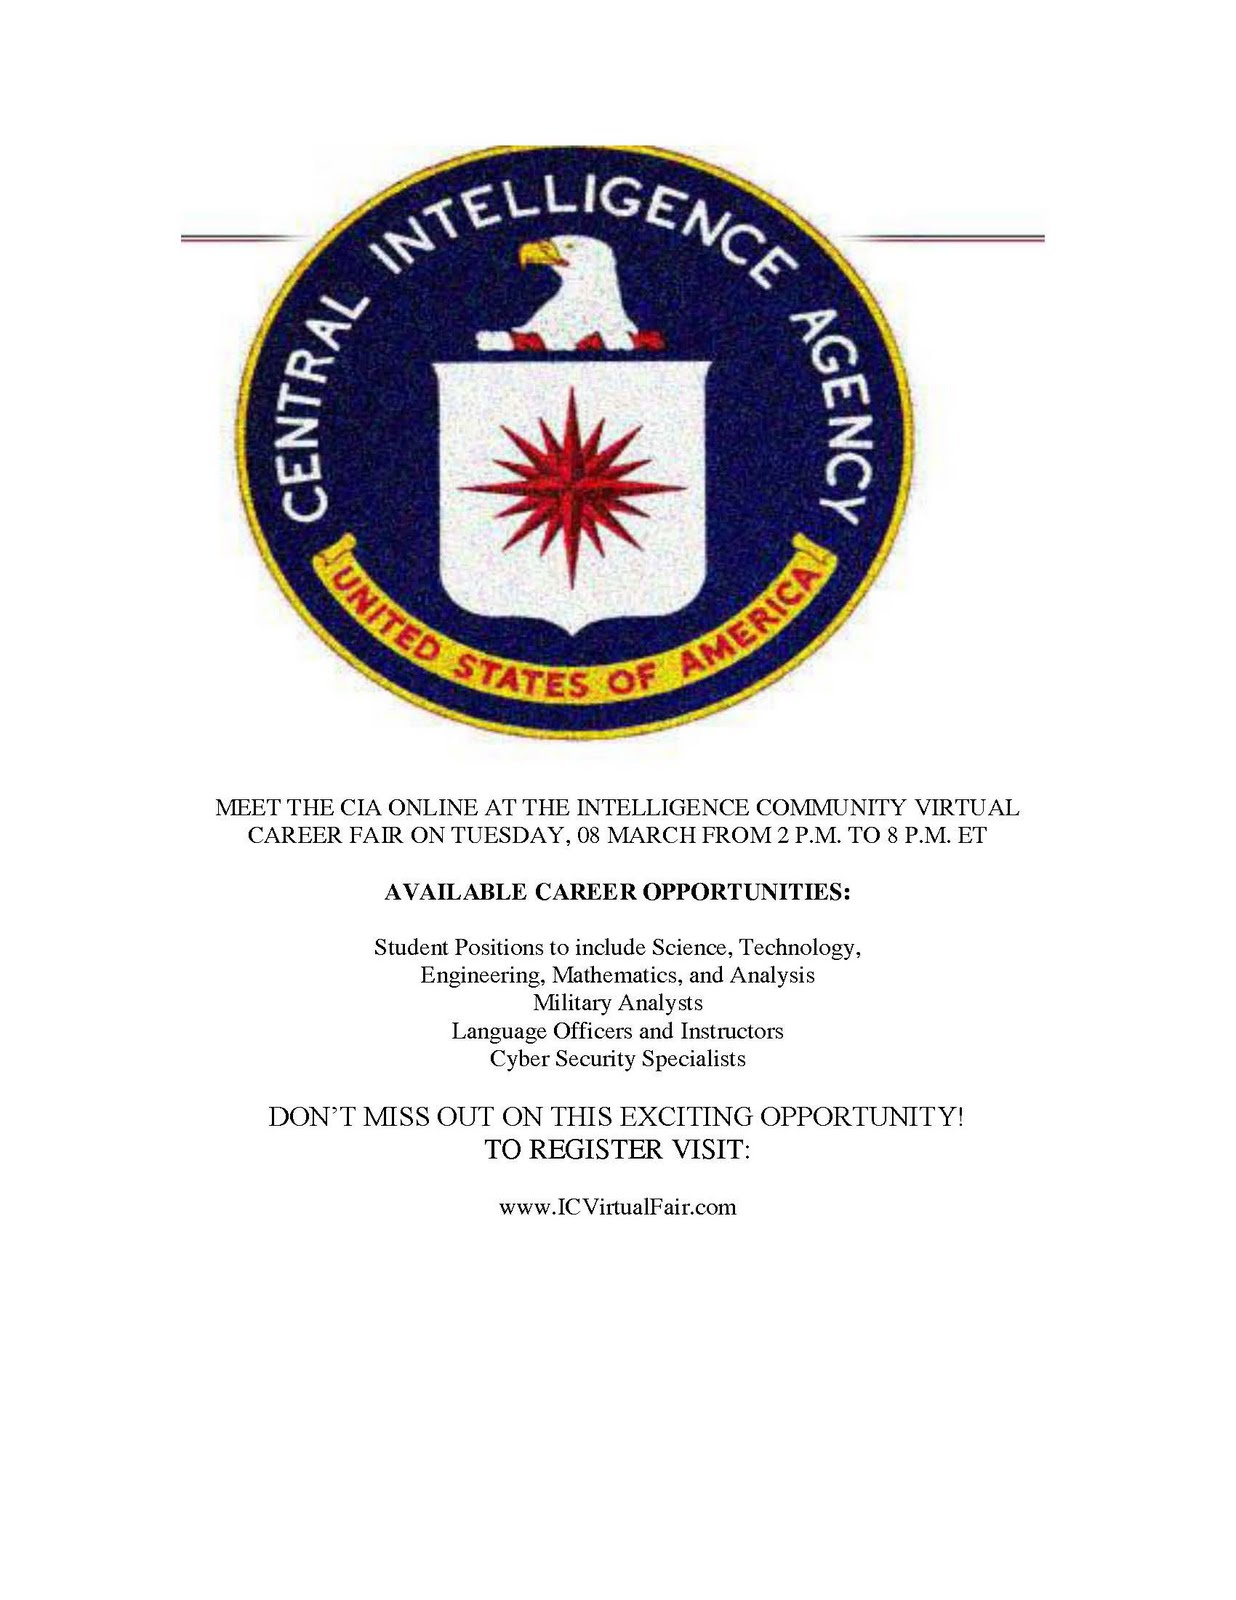 Tigers Prepare Intelligence Community Virtual Career Fair March 8th